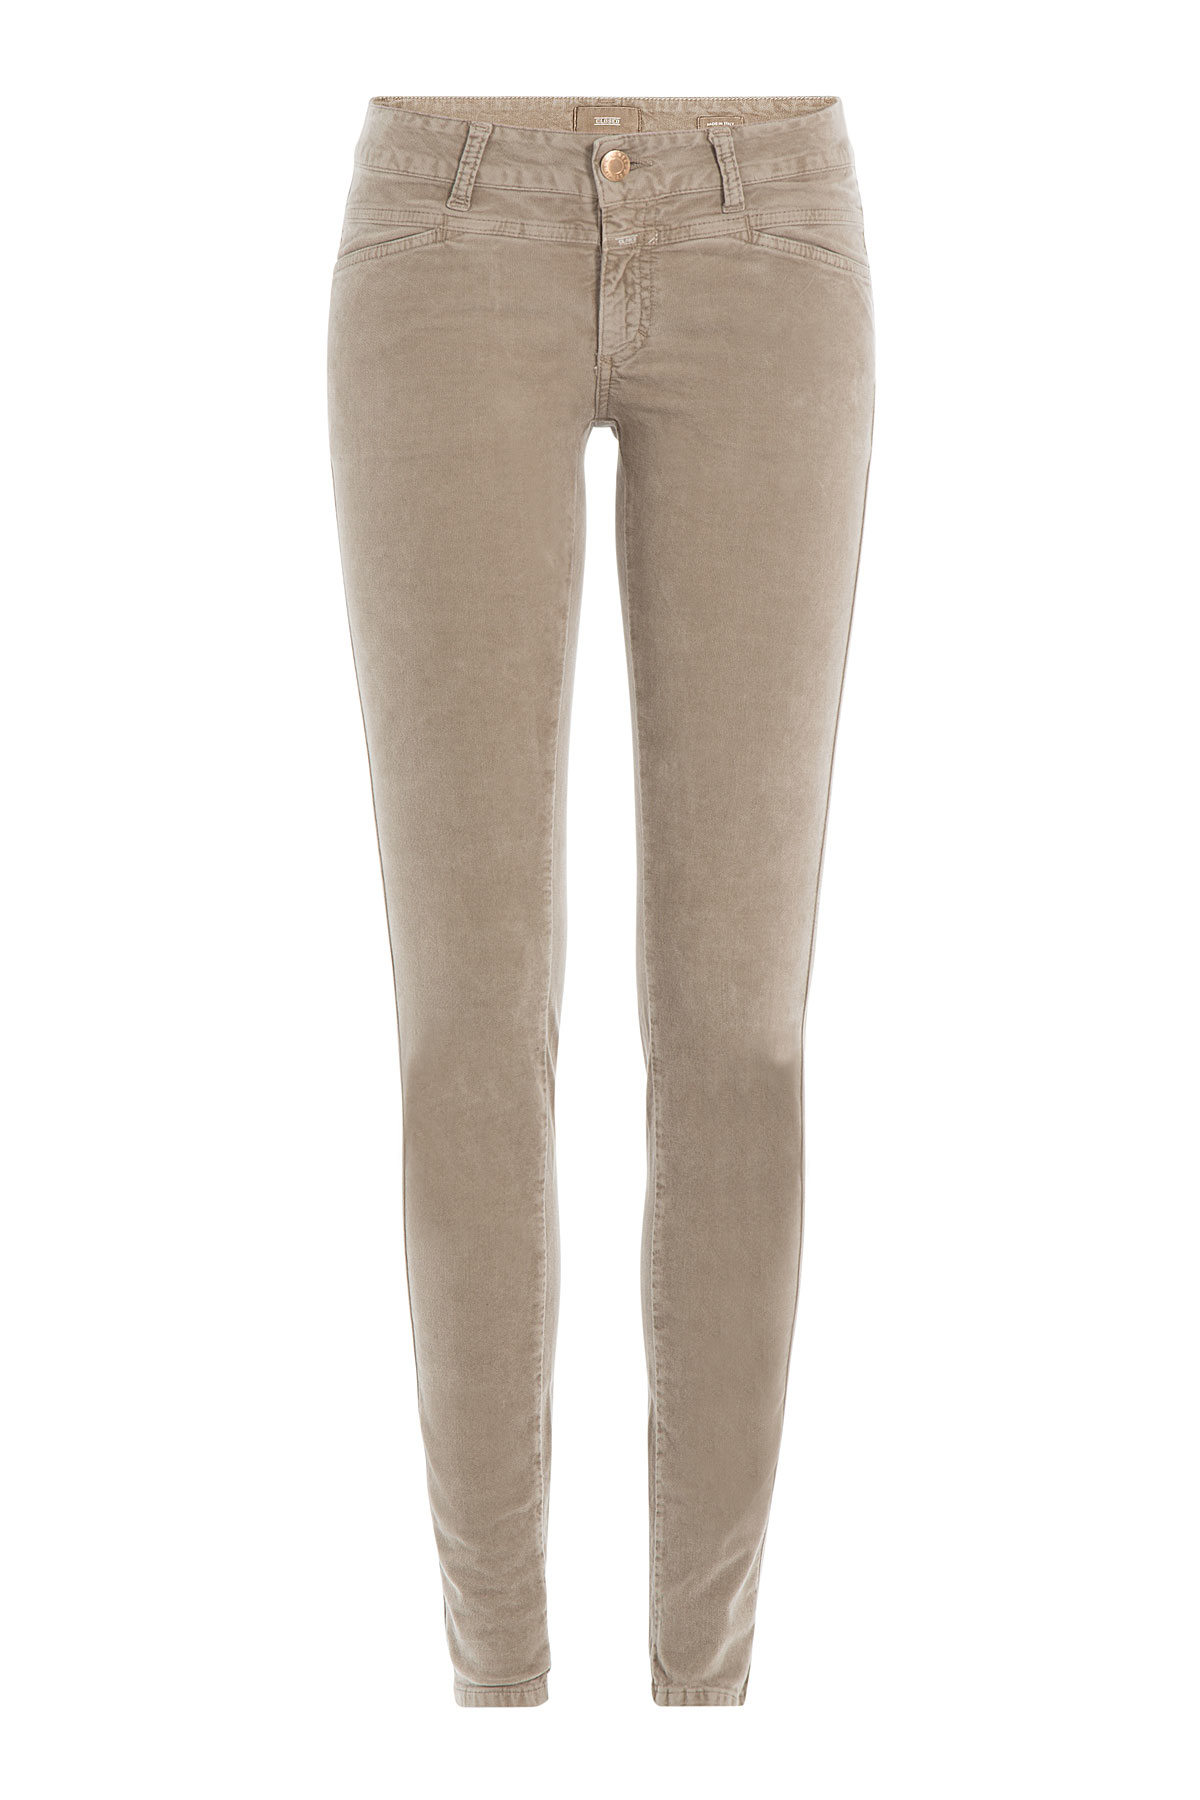 Closed Velvet Skinny Jeans - Beige in Natural | Lyst